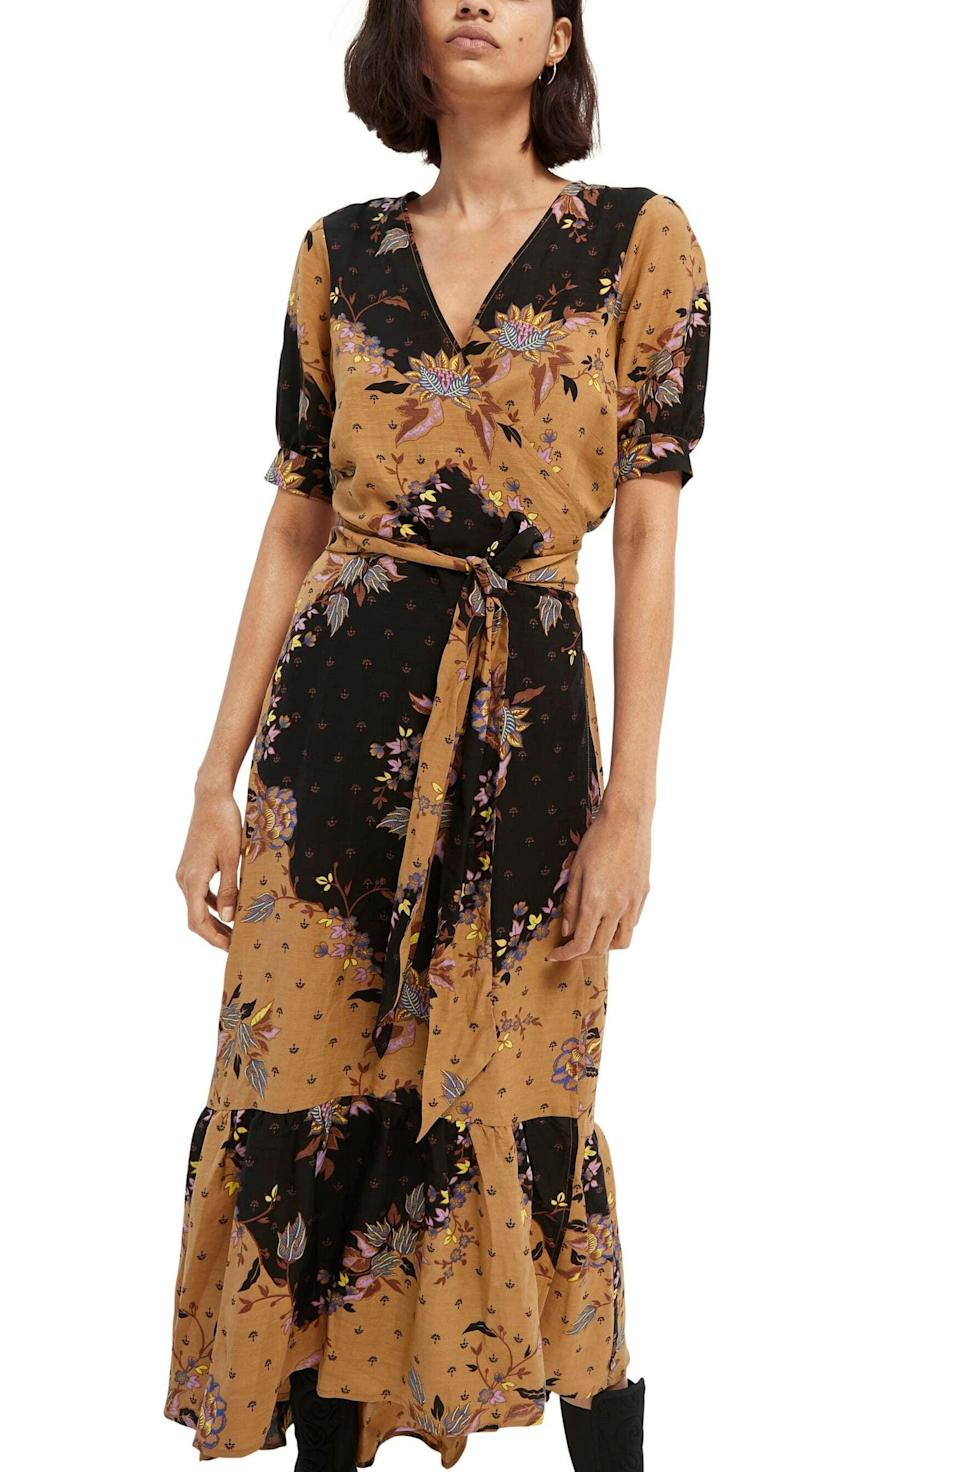 <p>The cut of this <span>Scotch &amp; Soda Floral V-Neck Dress</span> ($258) is quite flattering. Pair it with a black leather jacket.</p>